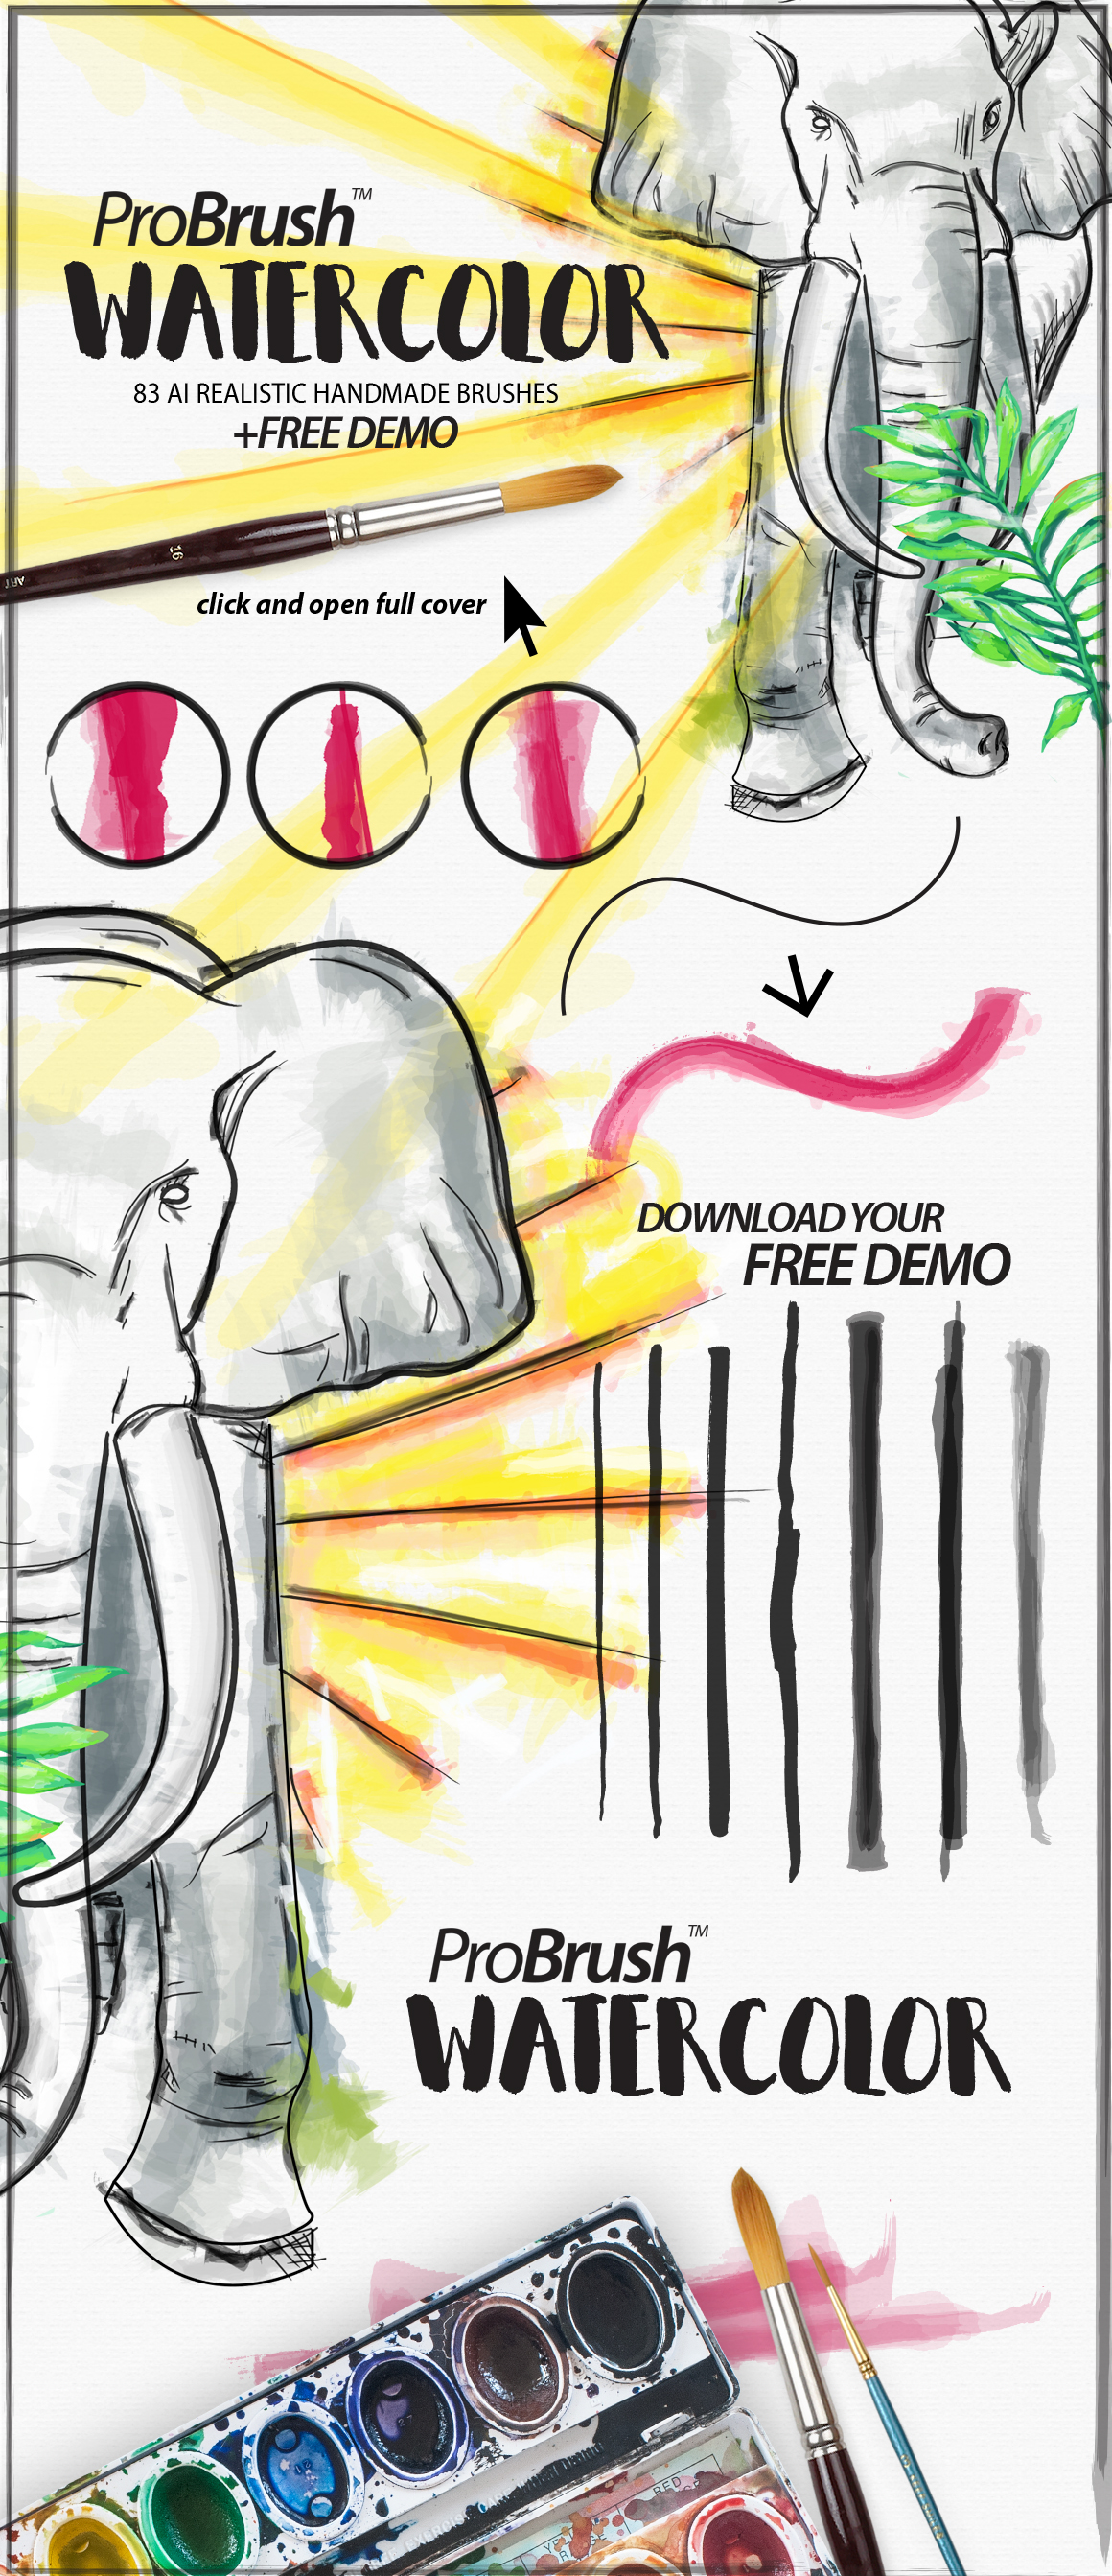 Book Cover Watercolor Brushes : Watercolor probrush™ free demo brushes on creative market